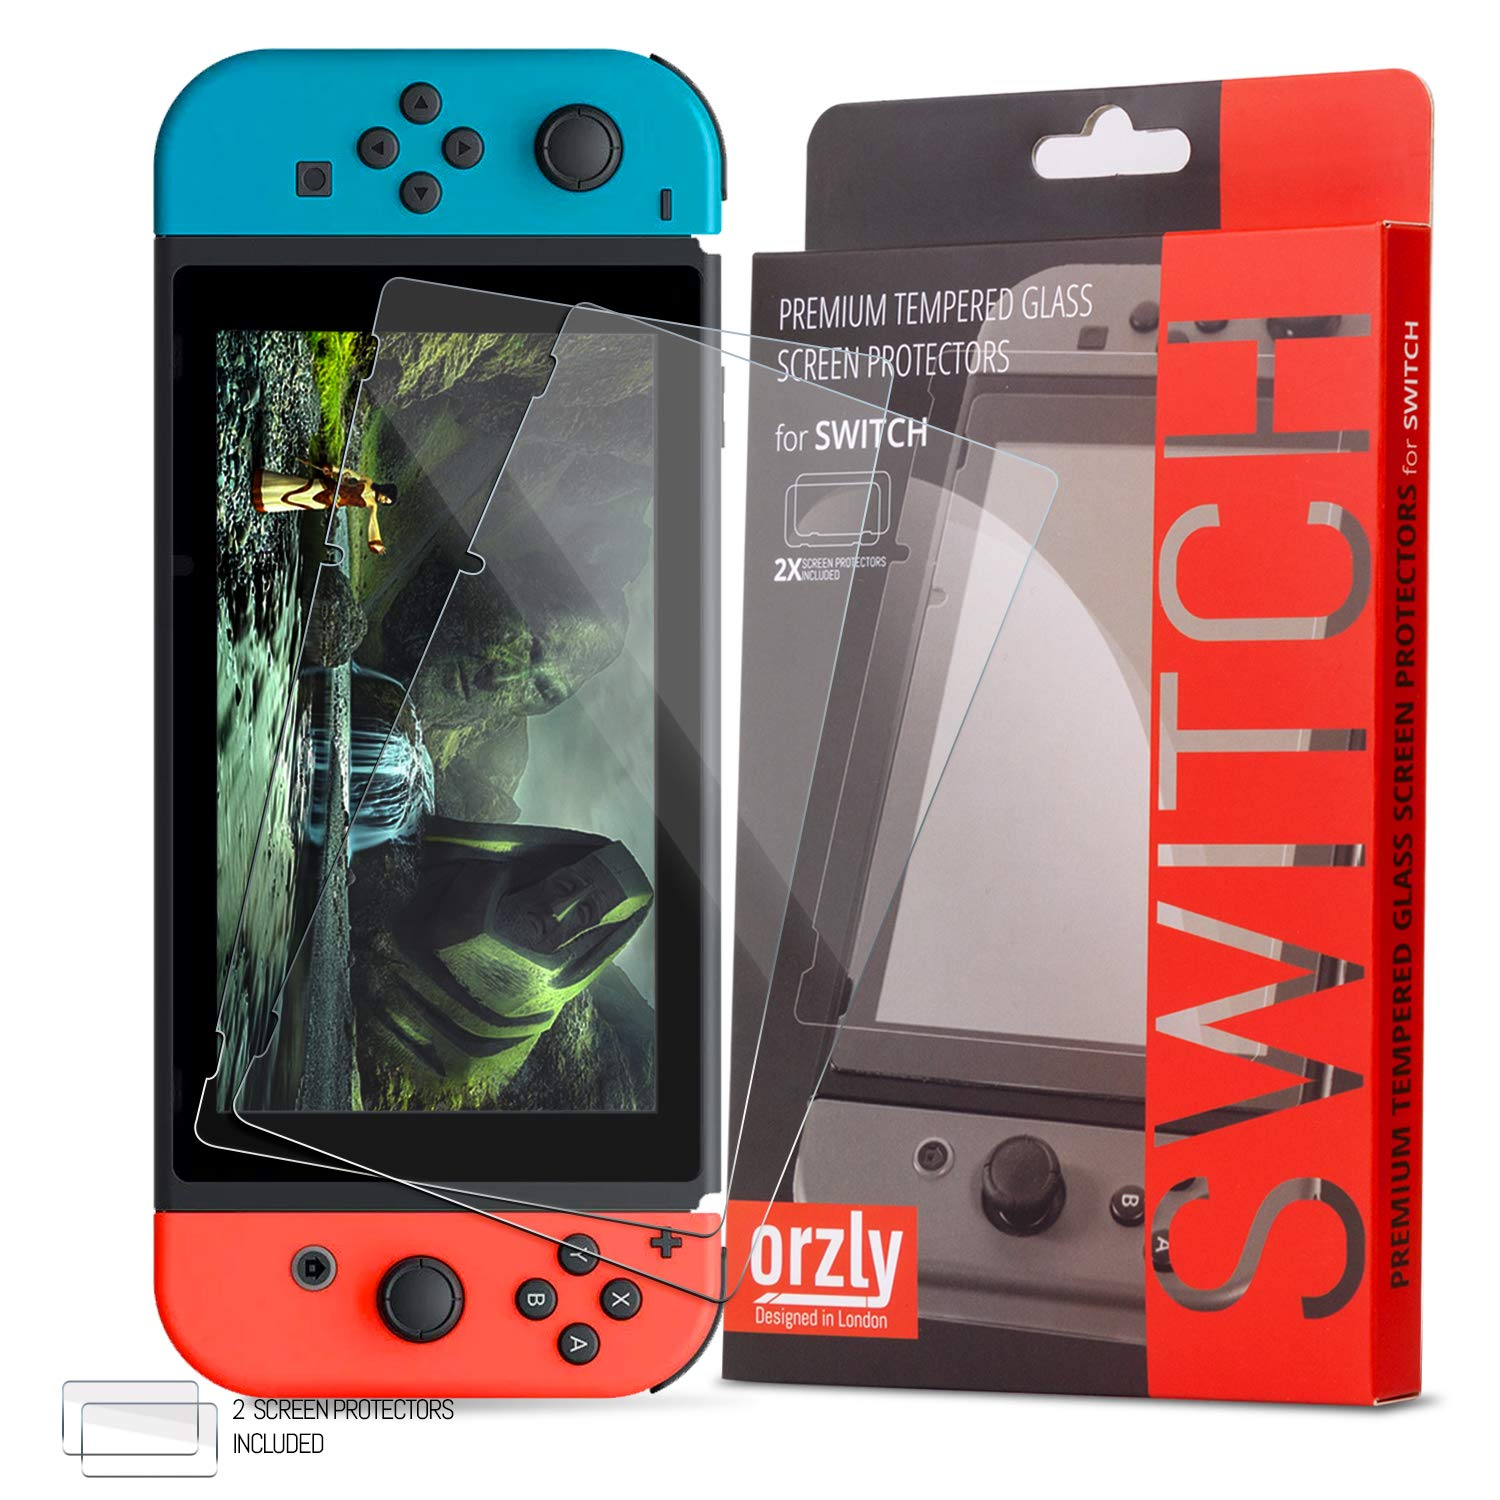 Orzly Glass Screen Protectors compatible with Nintendo Switch - Premium Tempered Glass Screen Protector TWIN PACK [2x Screen Guards - 0.24mm] for 6.2 Inch Tablet Screen on Nintendo Switch Console product image